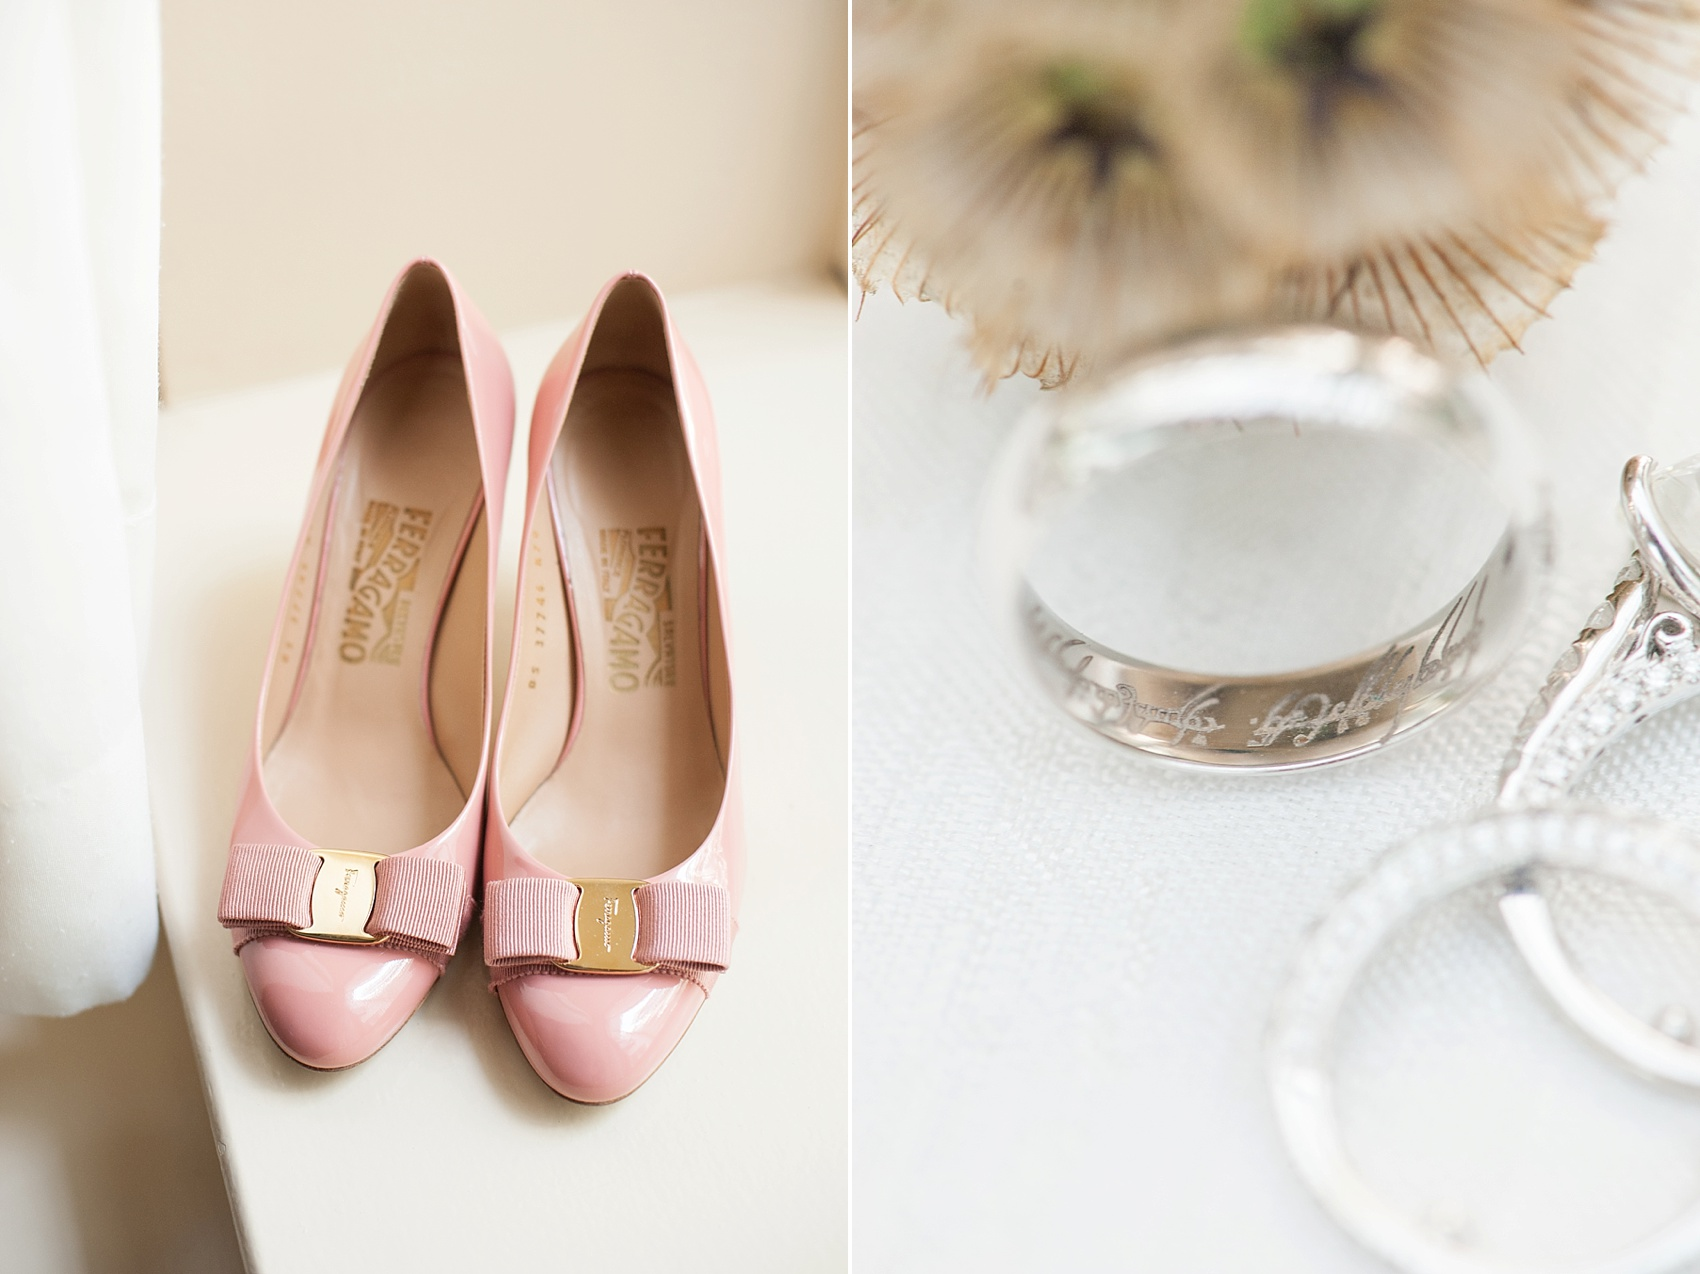 Pink Ferragamo heels and Lord of the Rings engraved wedding band at The Conservatory at the Madison Hotel, New Jersey. Photos by Mikkel Paige Photography.